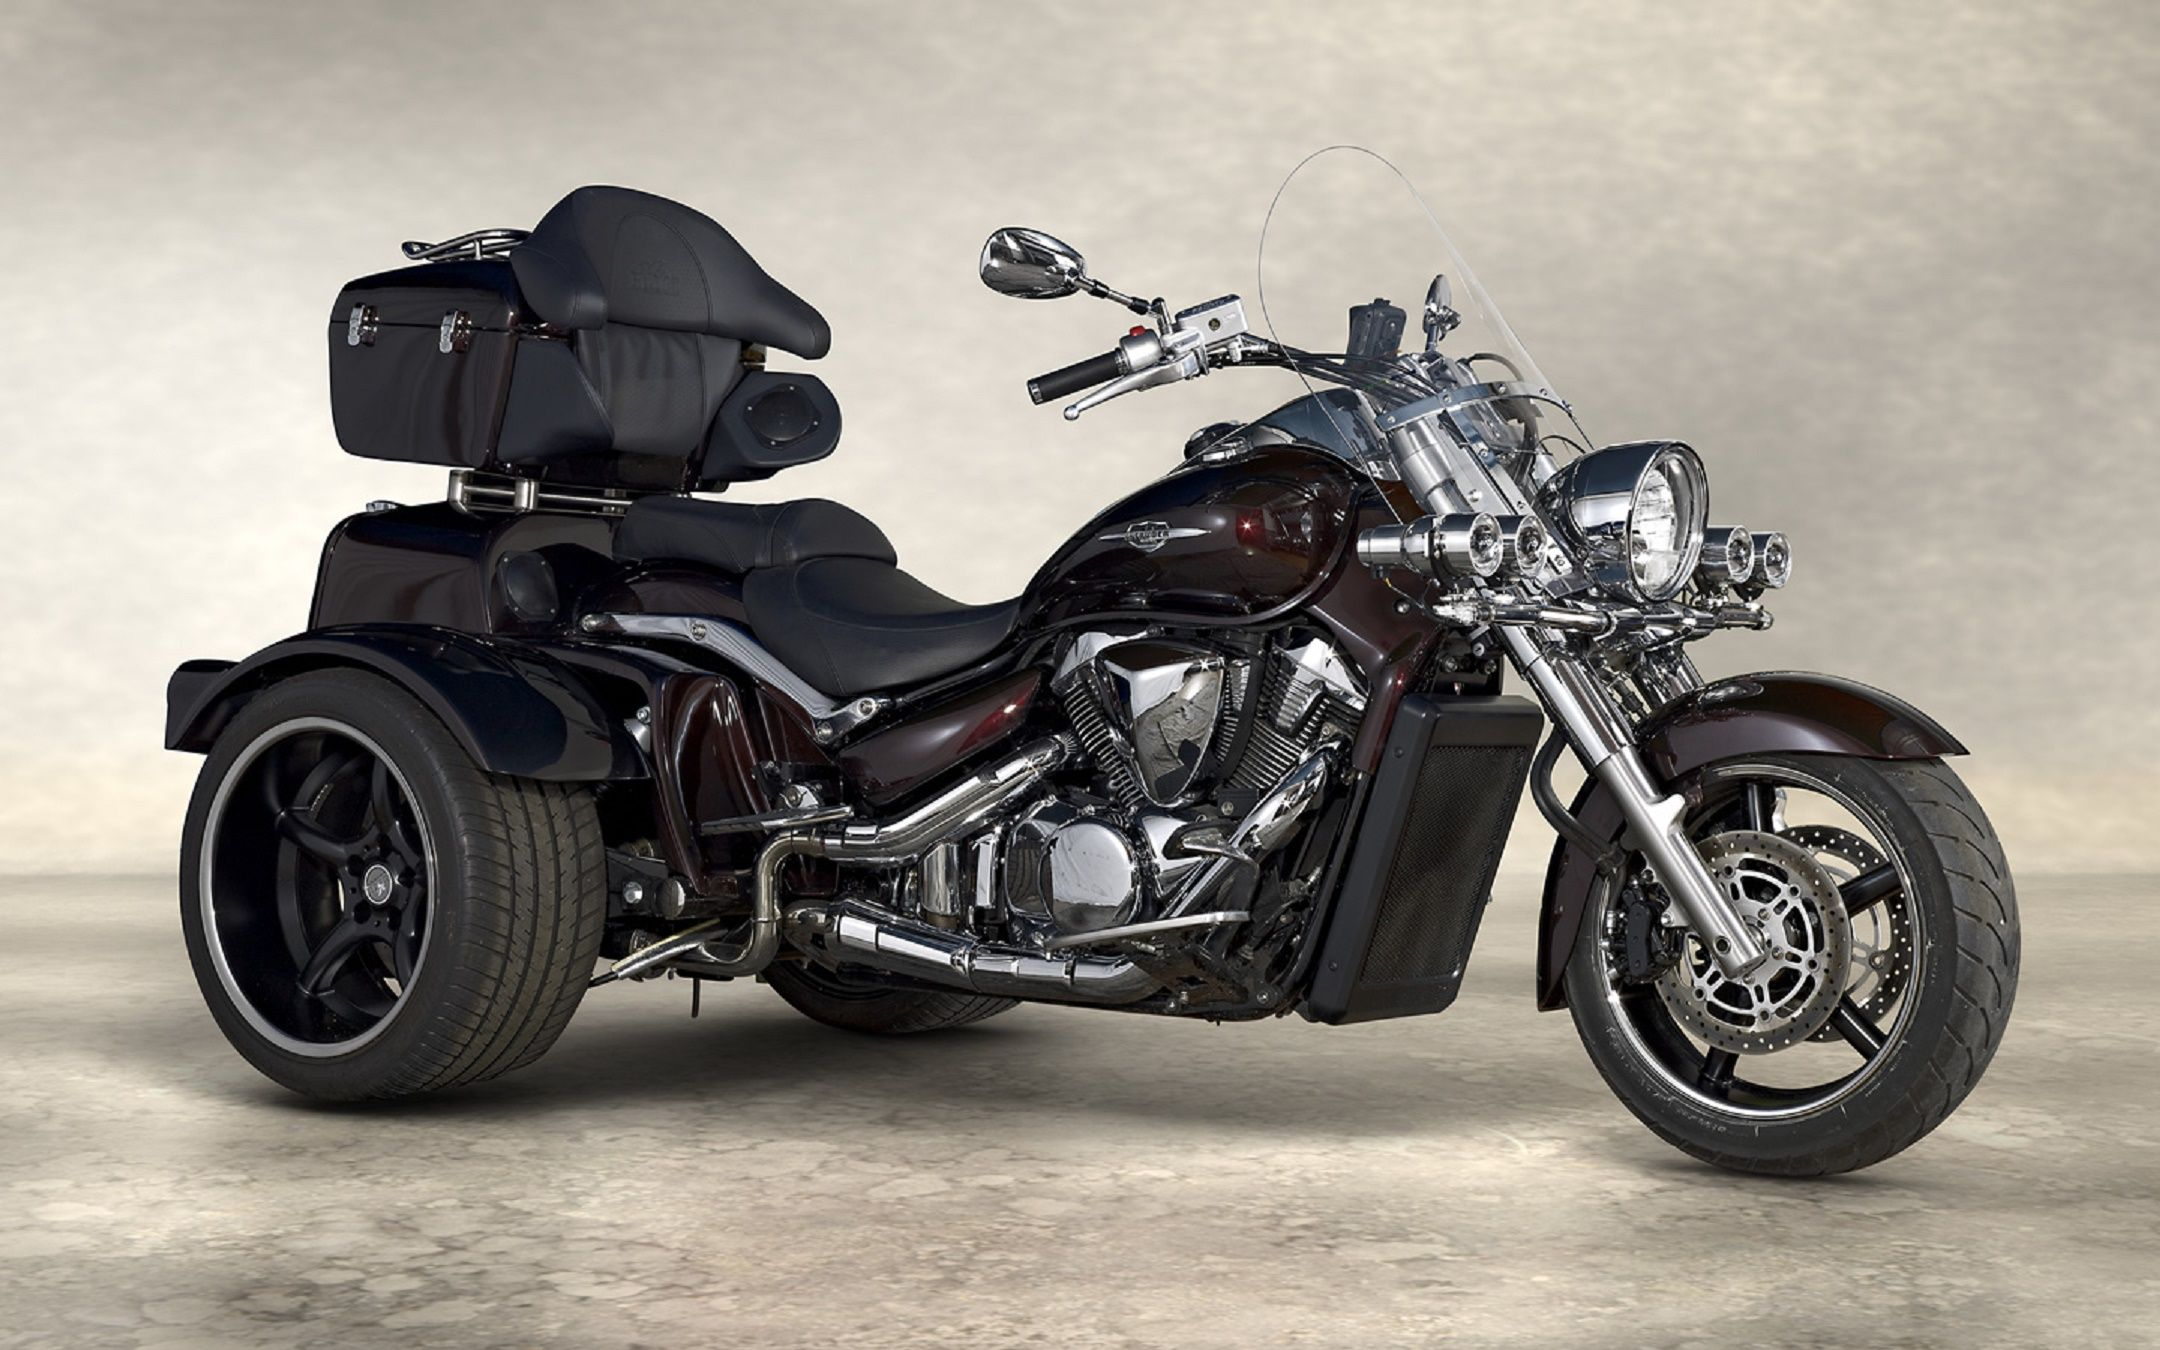 Suzuki intruder vz800 trike conversion cars bikes pinterest triumph rocket cars and dream cars